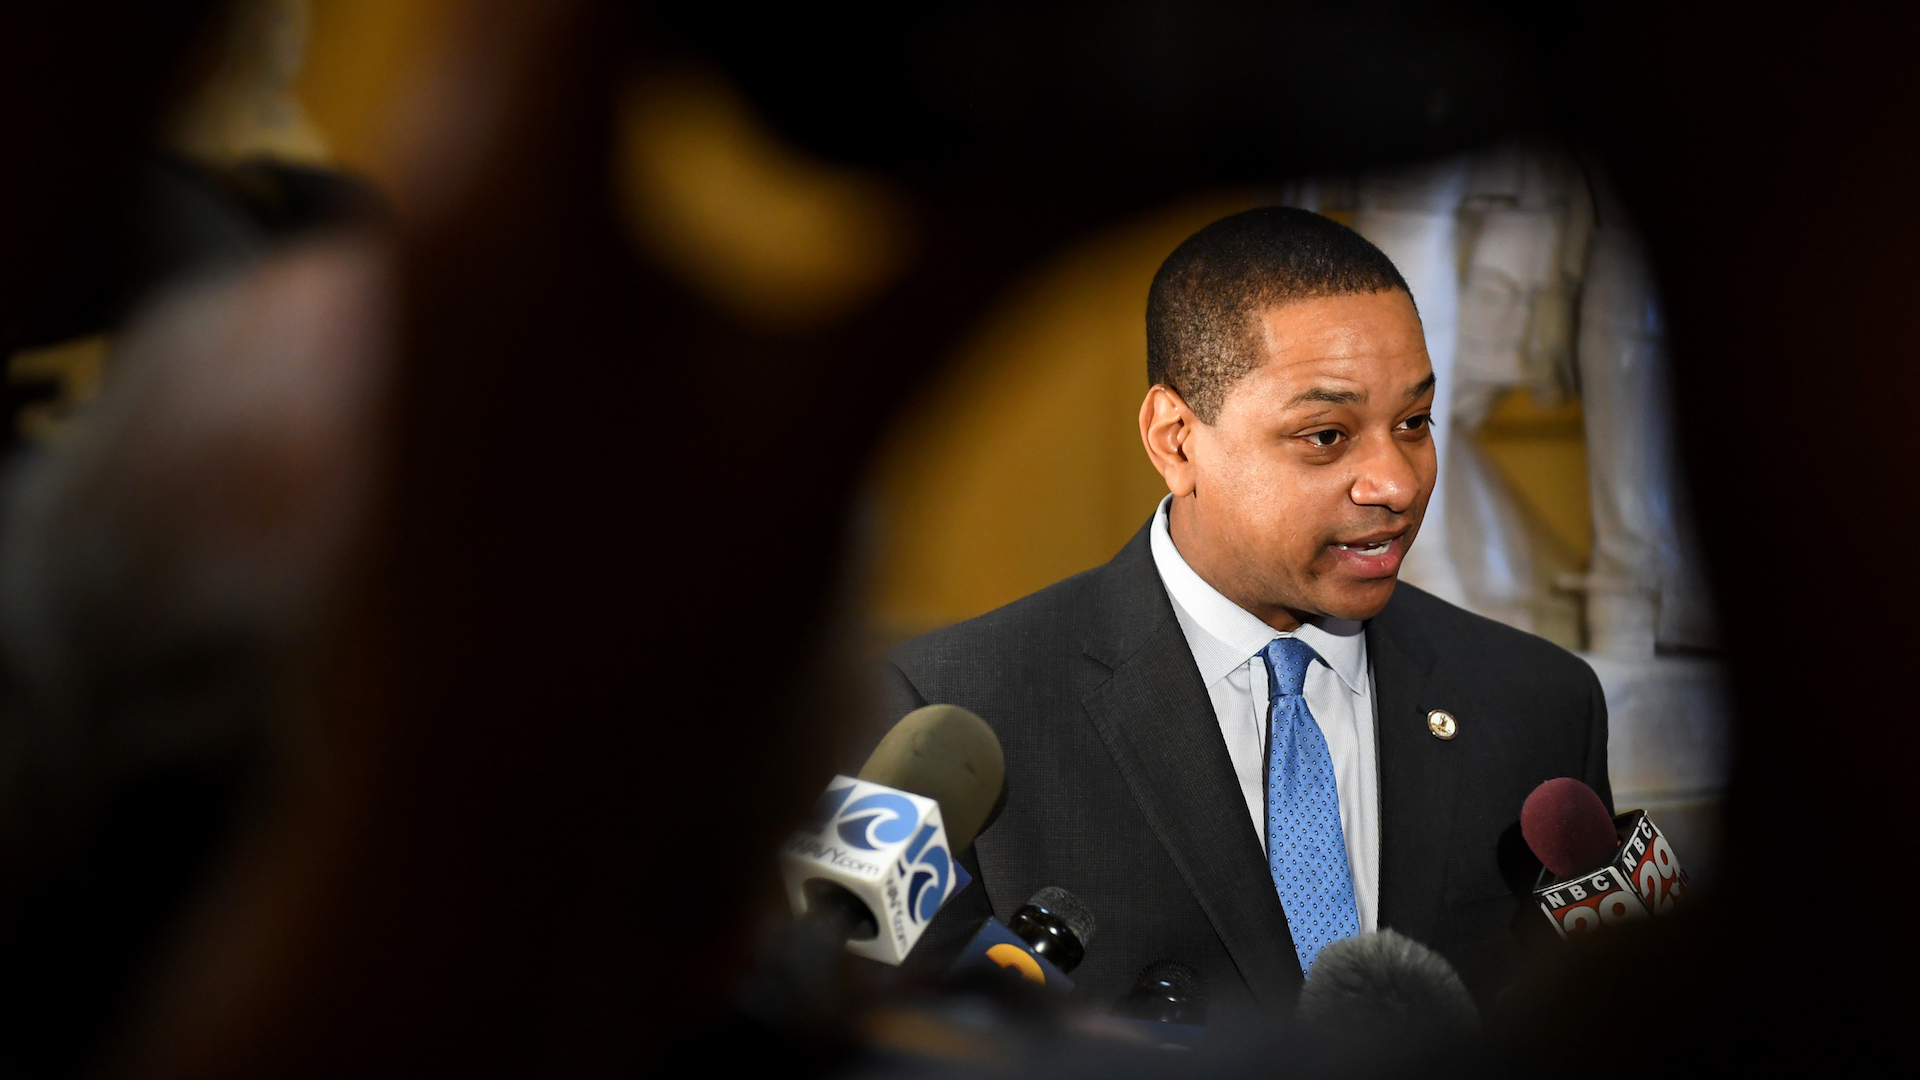 photo image Impeachment Reluctantly Floated In VA After Second Allegation Against Fairfax